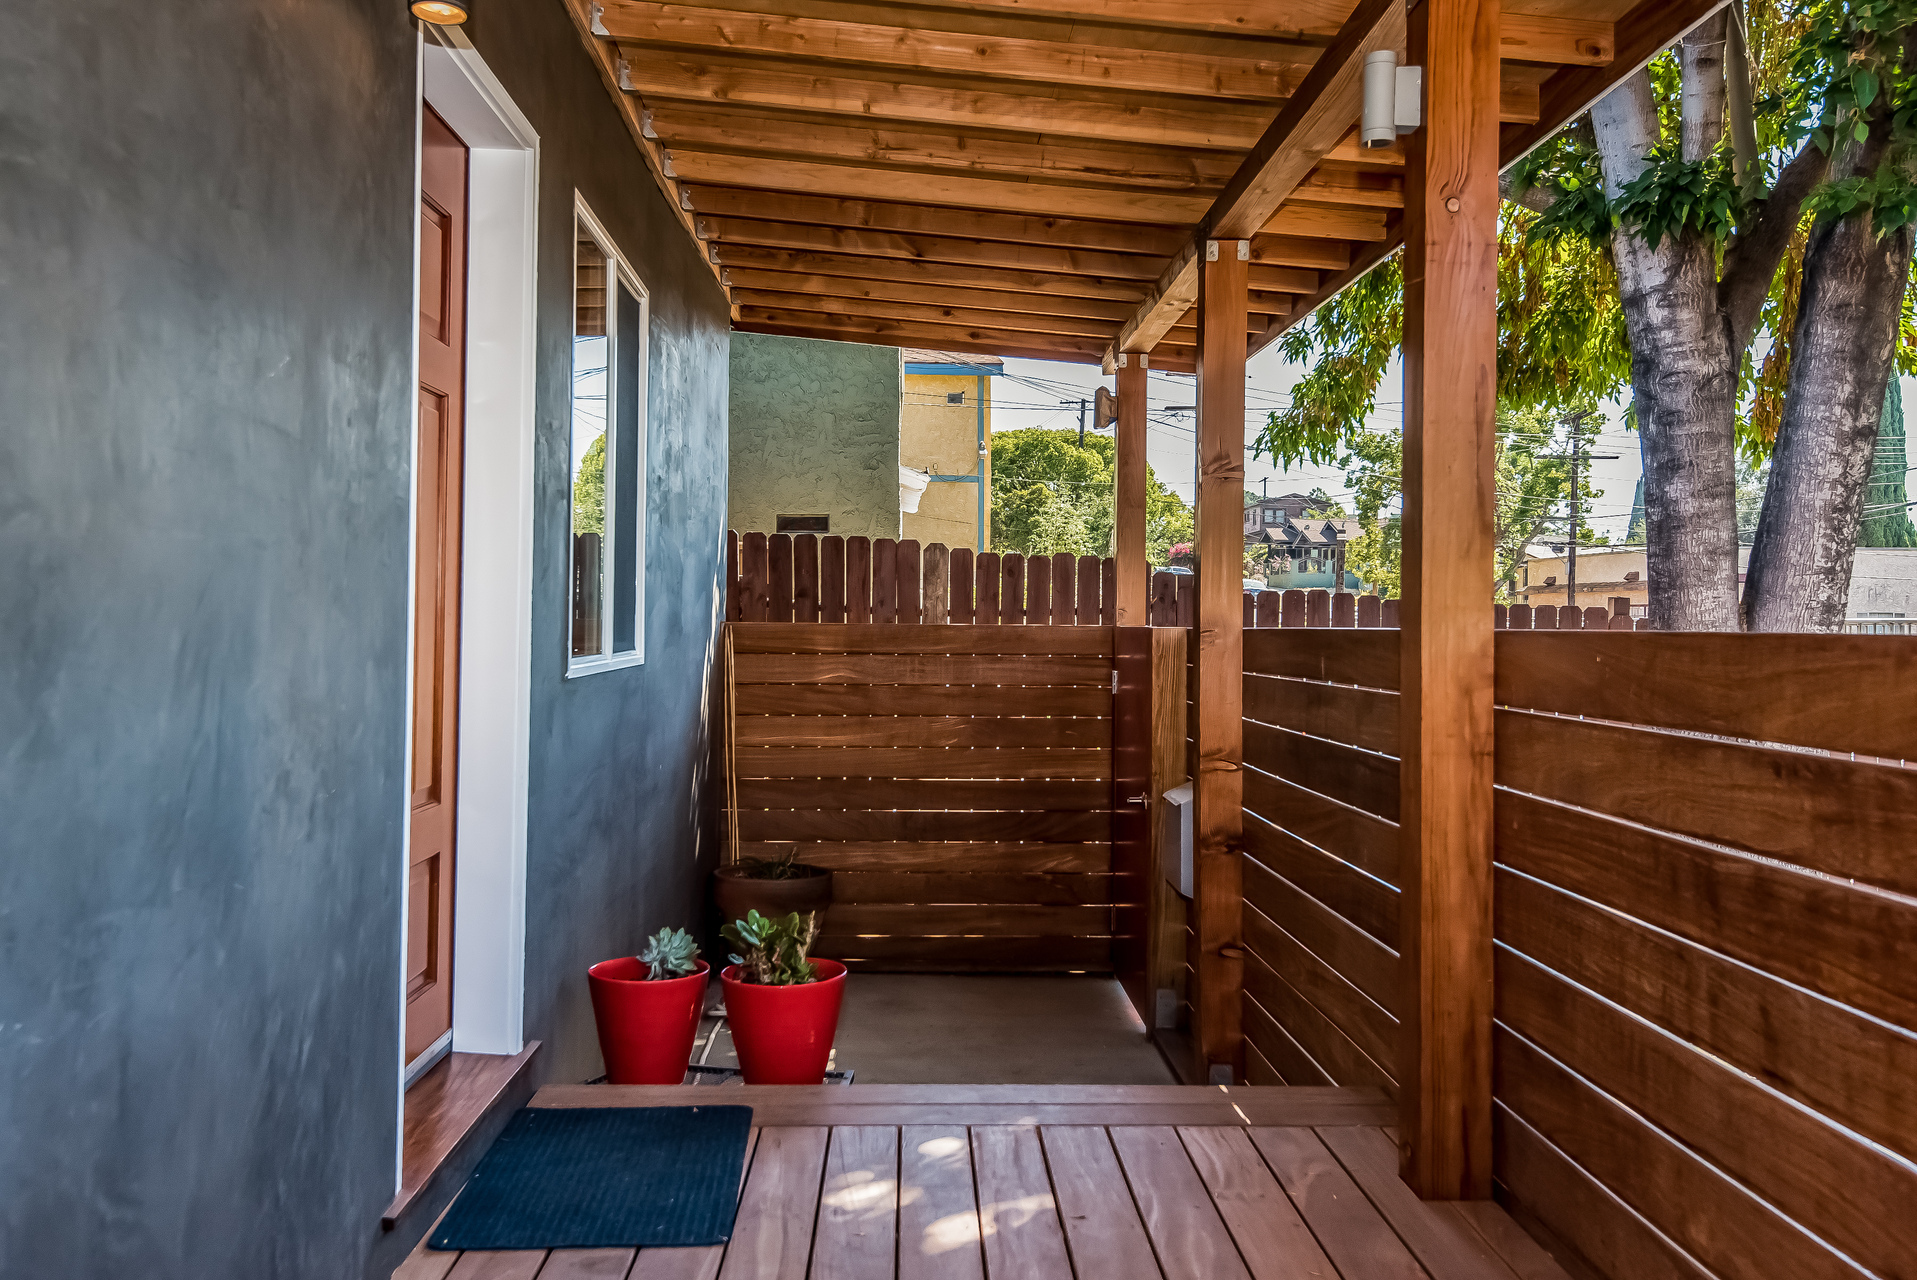 006-Covered_Porch-3114593-medium.jpg